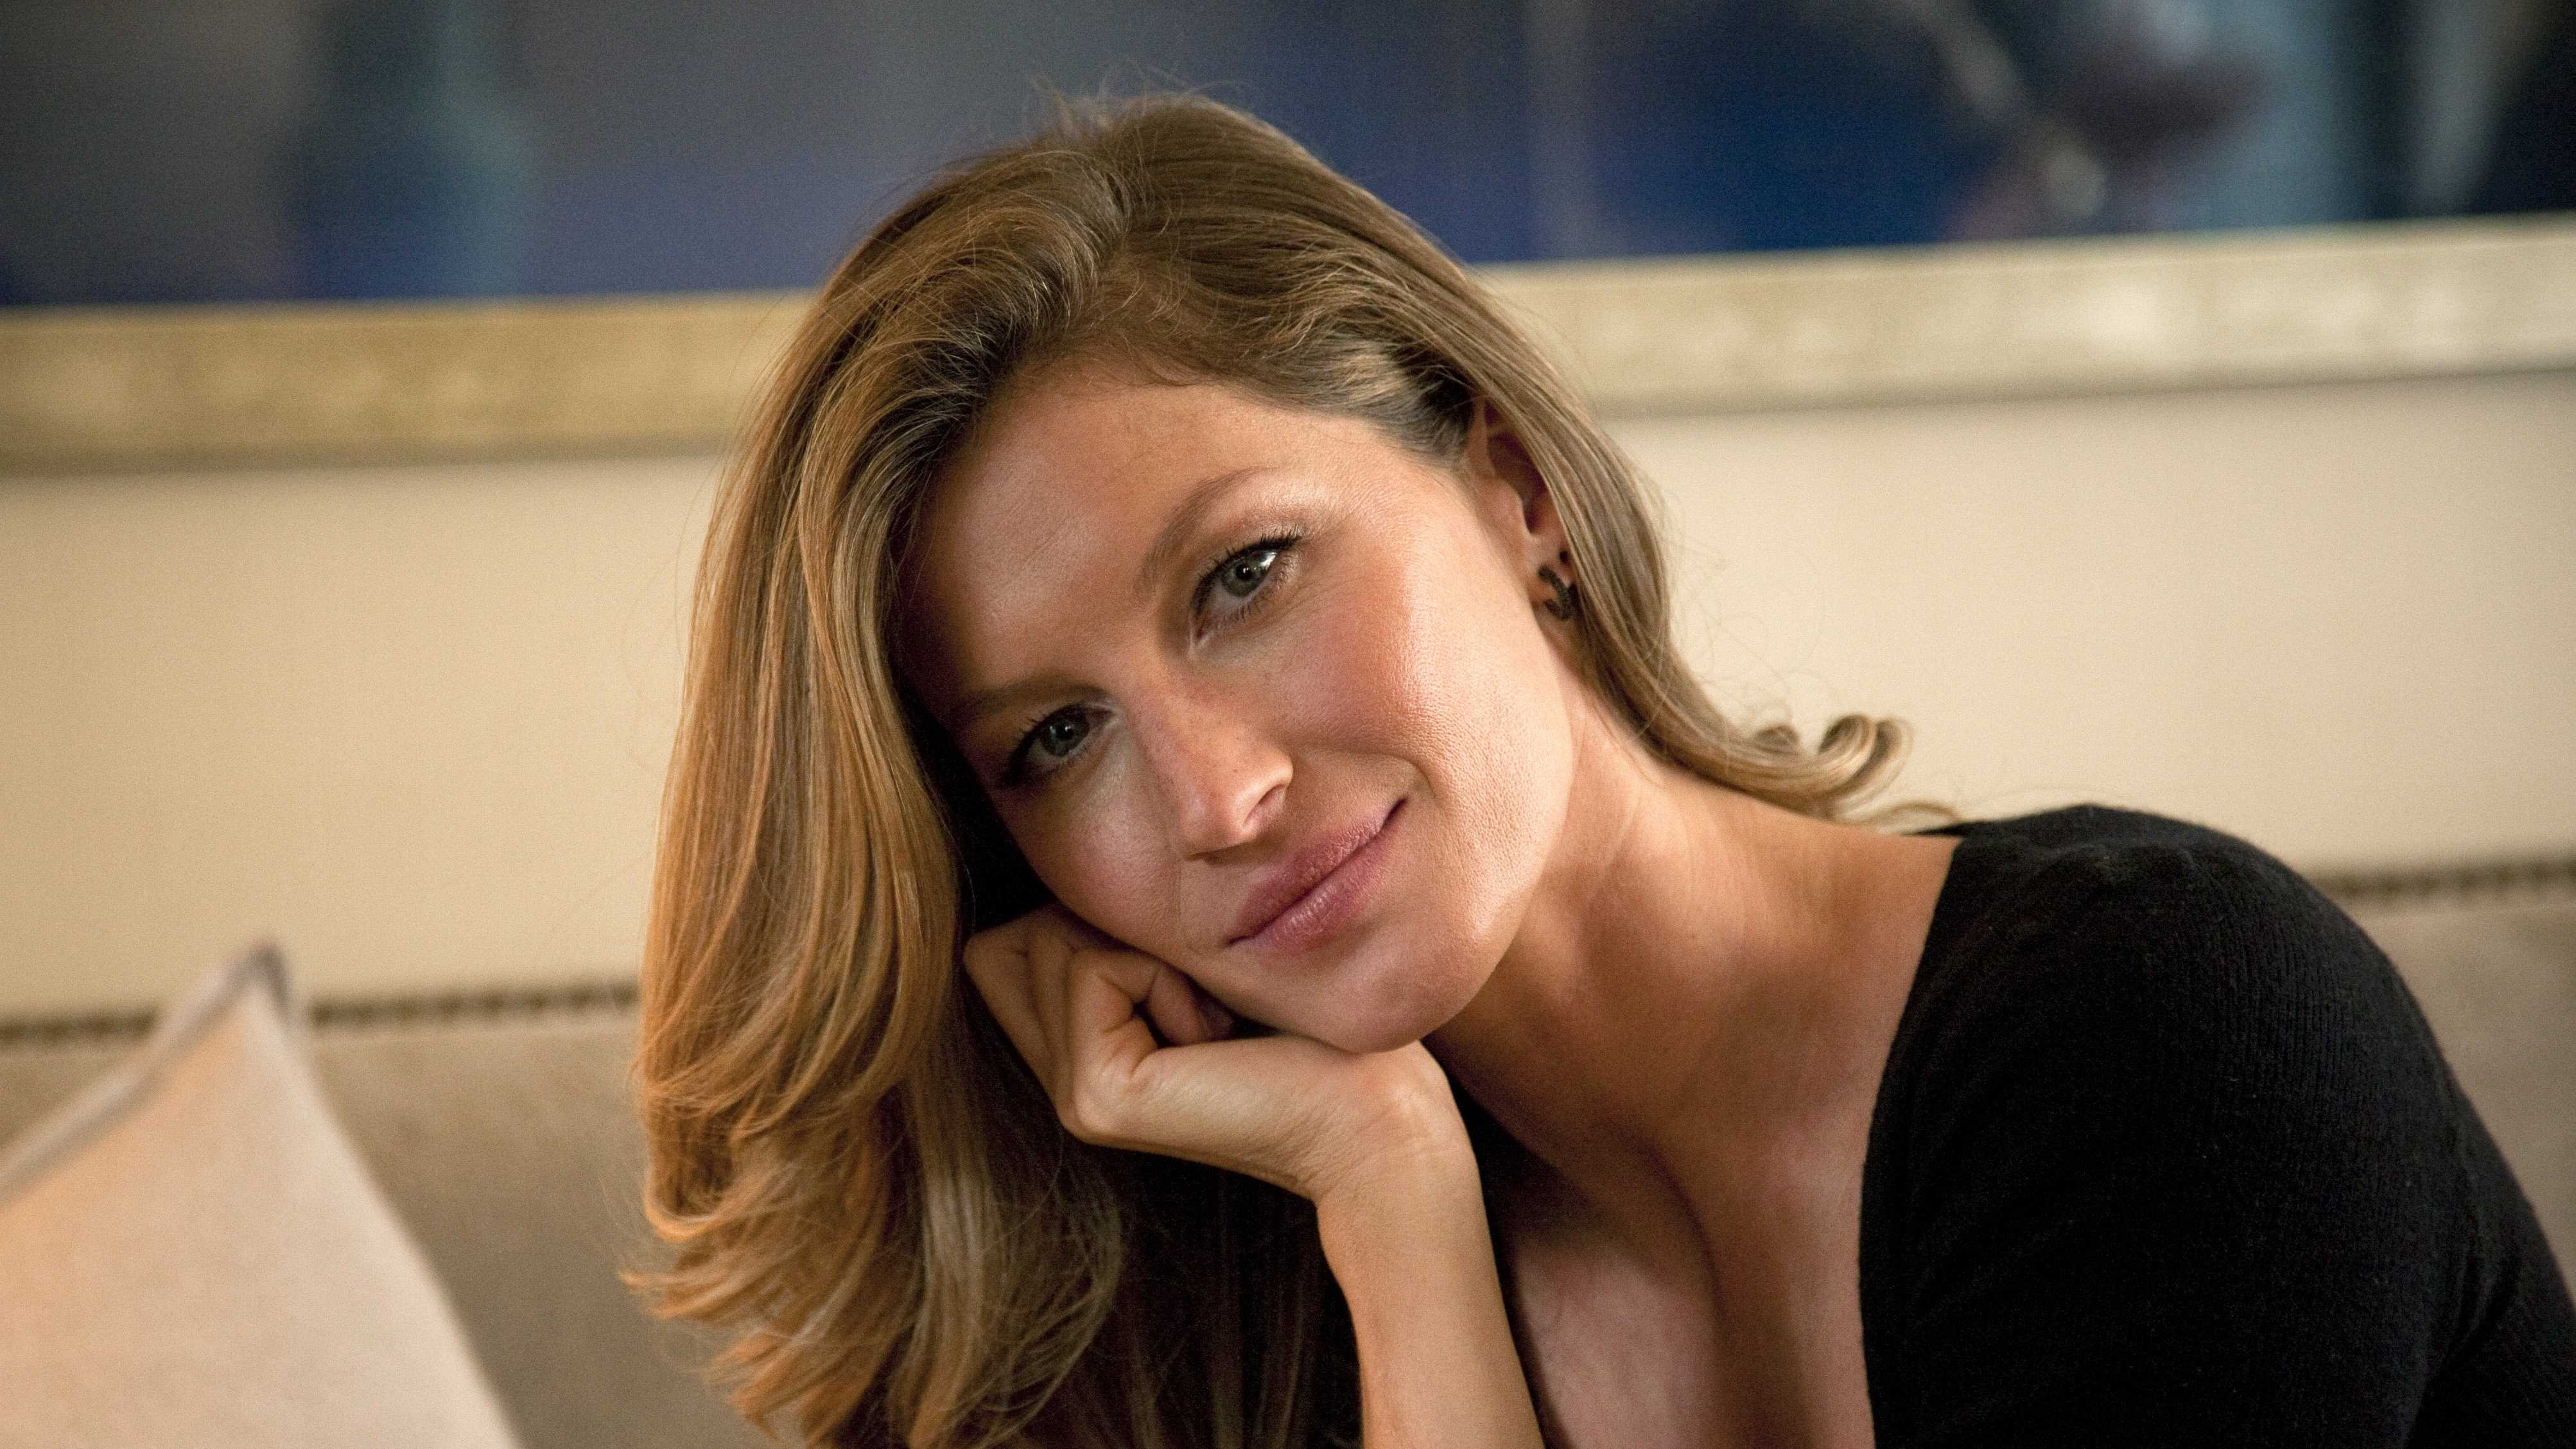 Gisele Bundchen Portrait photo 011414